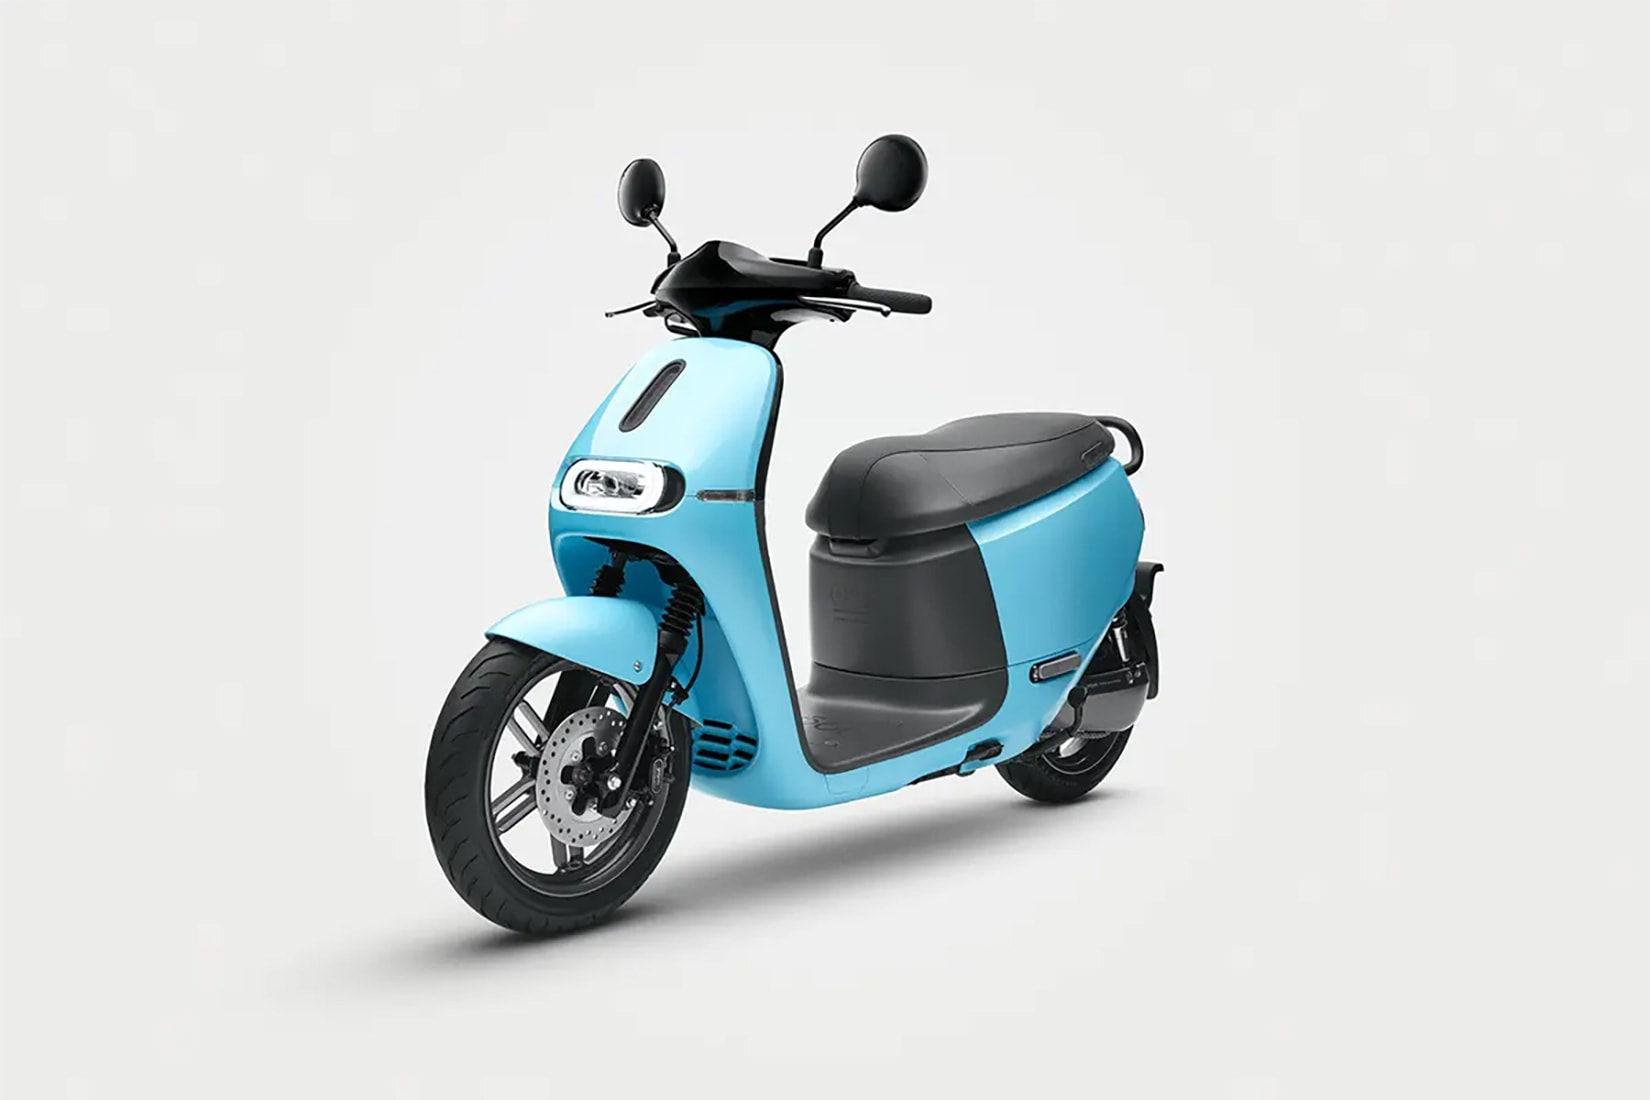 best electric motorcycles 2021 luxury Gogoro Smartscooter 2 - Luxe Digital